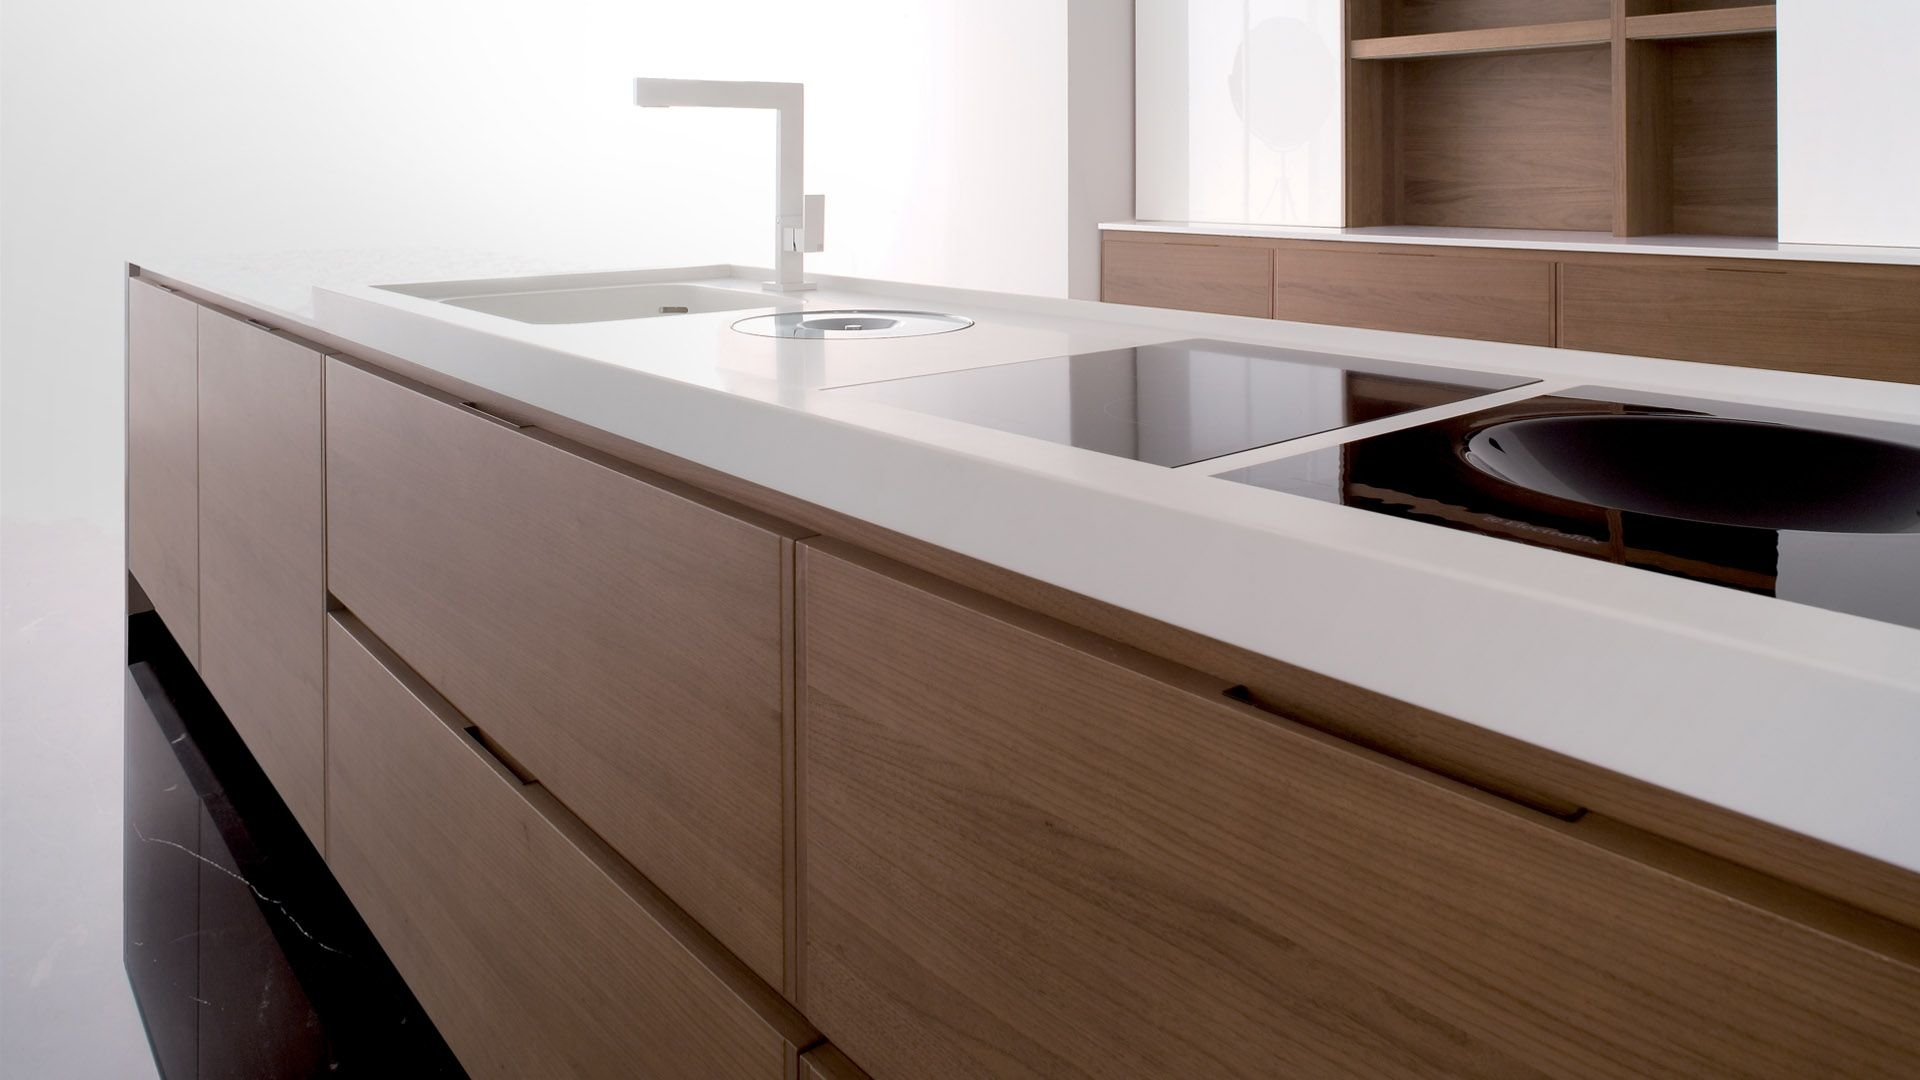 SOLID SURFACE - Solid Surface countertop sheets are non-porous solid surfaces made of natural minerals and acrylic resins. They are completely seamless, so when fabricated and installed, the countertops, backsplash, and even other colors can be easily integrated into one piece.See More >